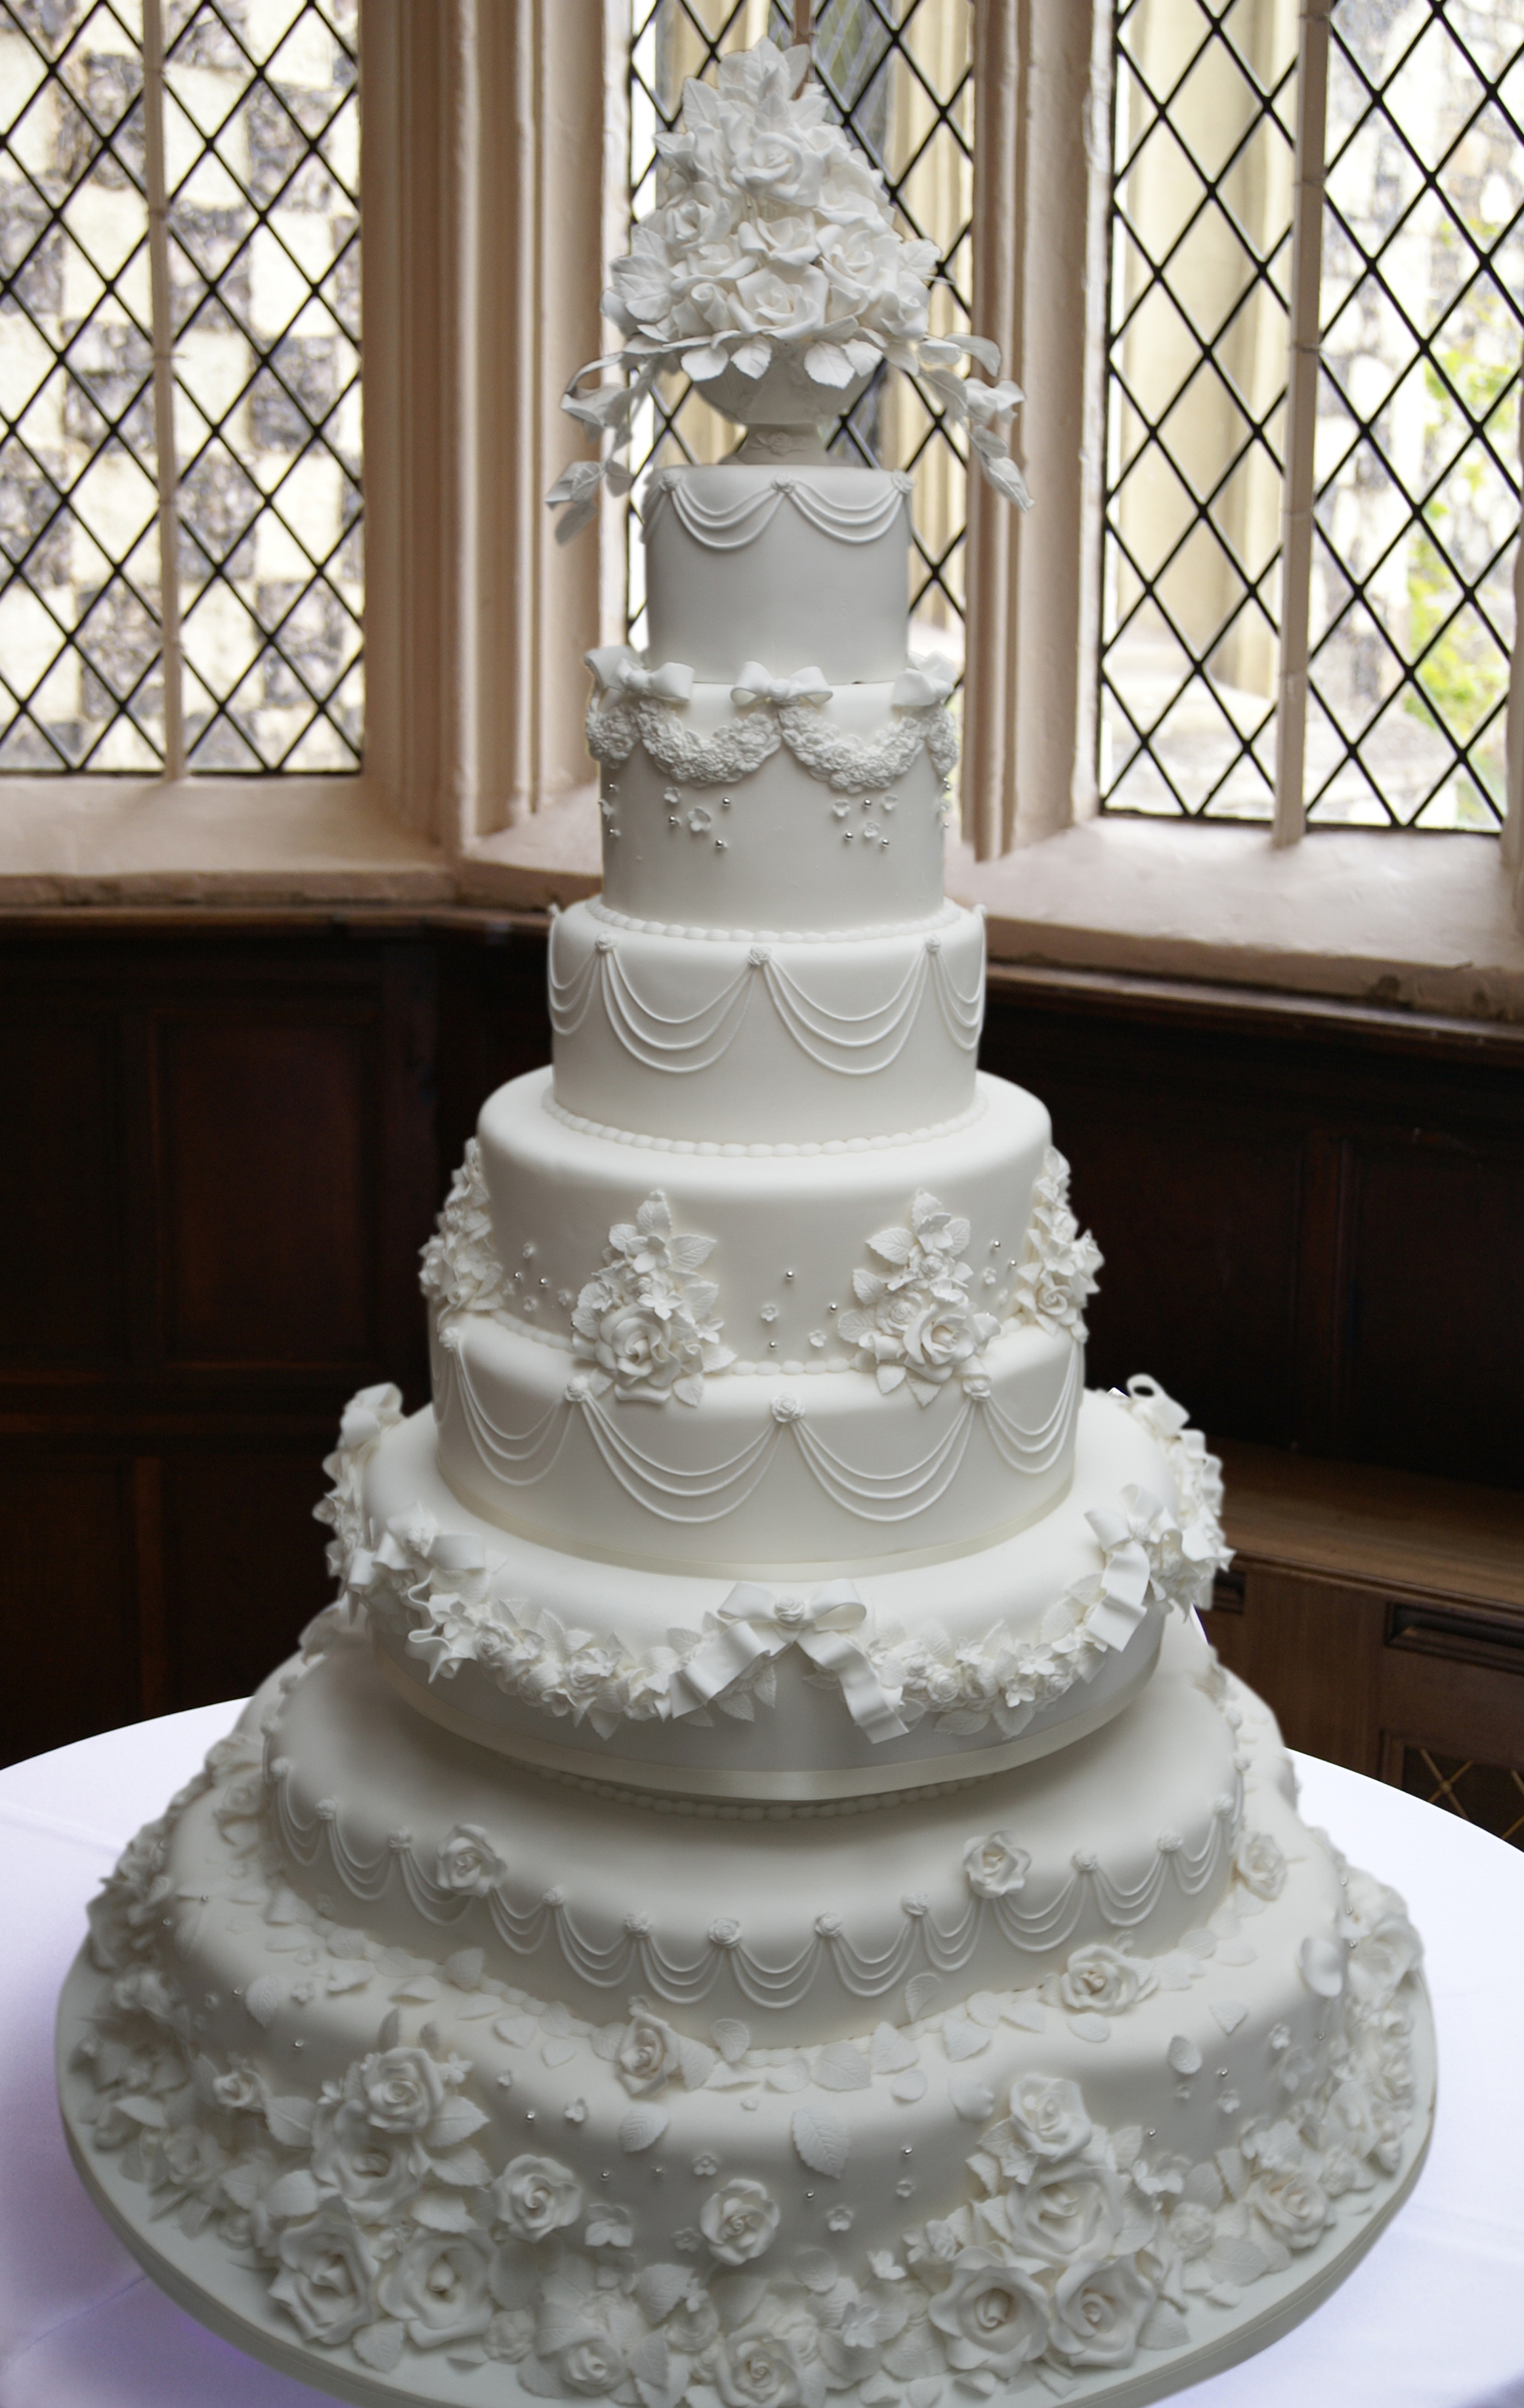 top tier of wedding cake traditions bespoke wedding cakes of cakes 21071